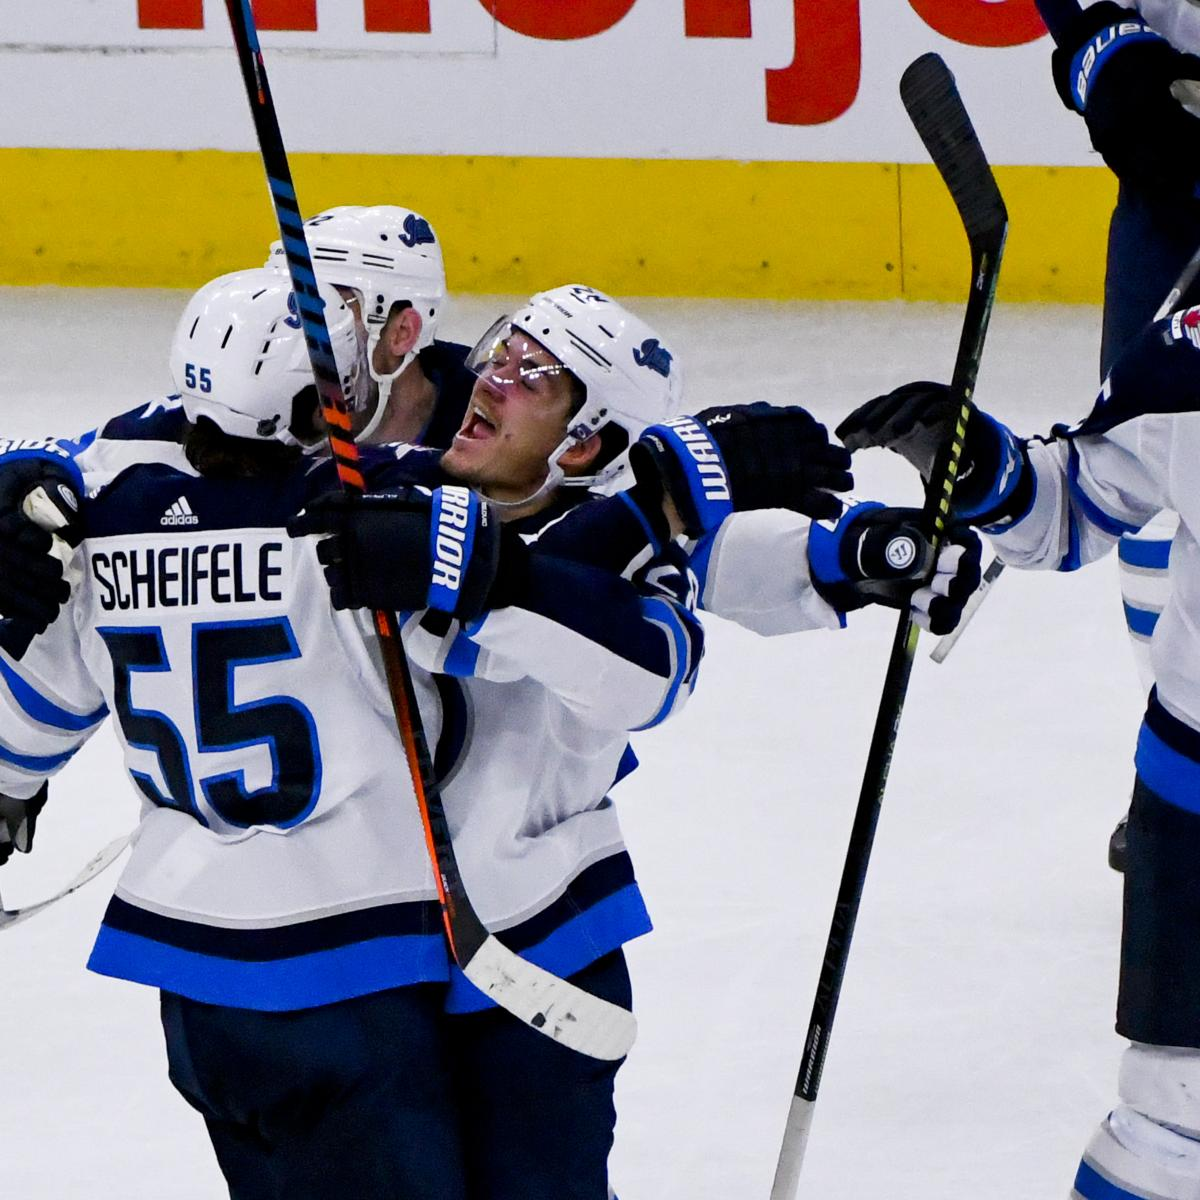 Jets Clinch Postseason Spot with Win vs. Flames; Latest 2021 NHL Playoff Picture thumbnail